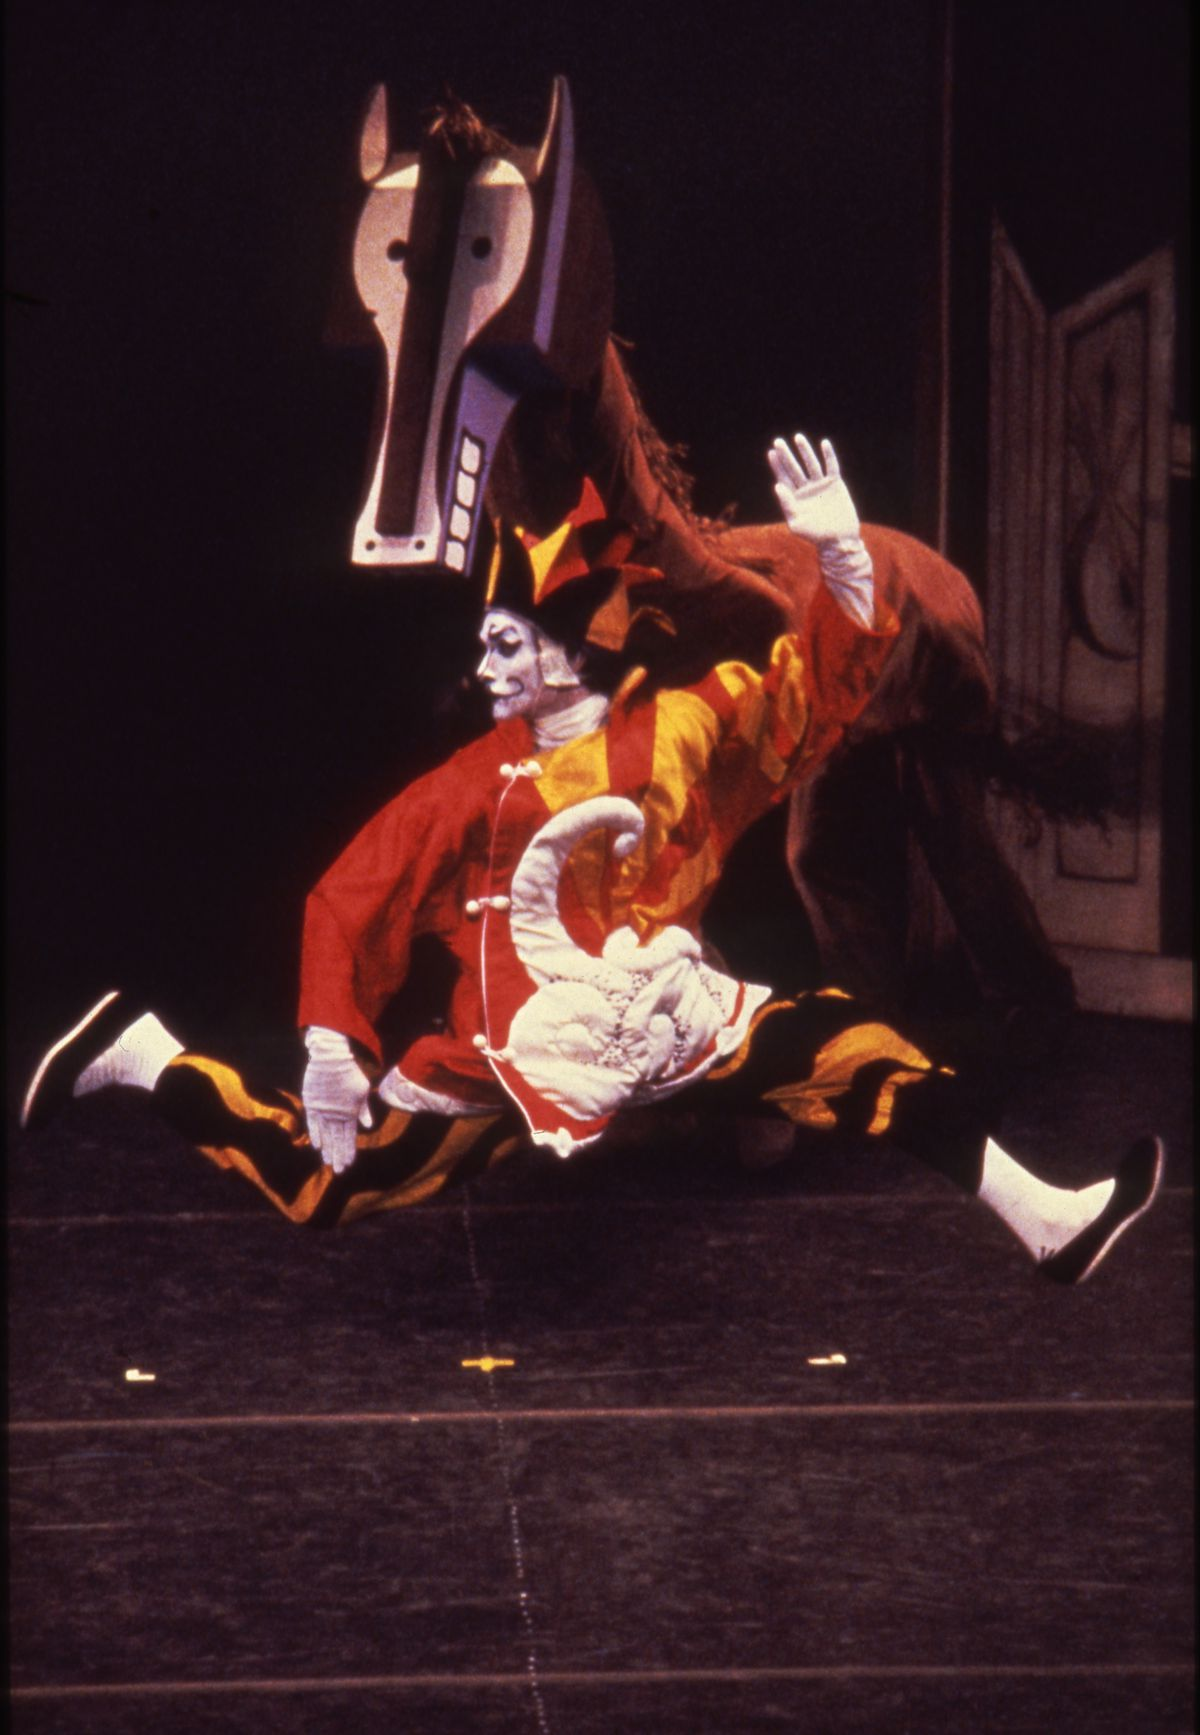 """The Joffrey Ballet production of """"Parade,"""" whose sets and costumes were designed by Picasso, suggests the artist returned to an old image for his Chicago sculpture. 